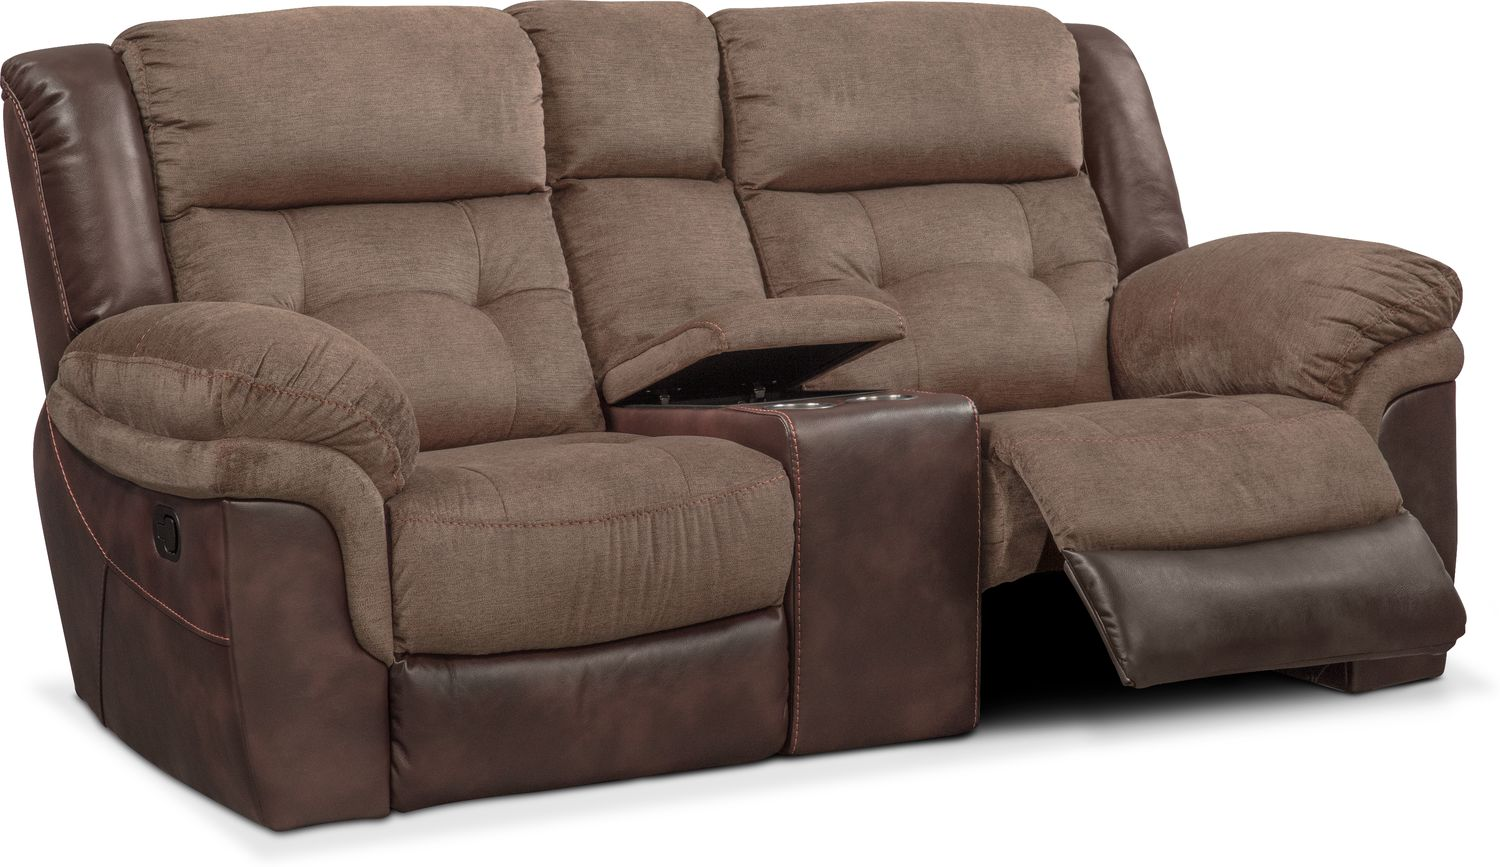 Click to change image.  sc 1 st  Value City Furniture & Tacoma Manual Reclining Sofa and Loveseat Set - Brown | Value City ... islam-shia.org